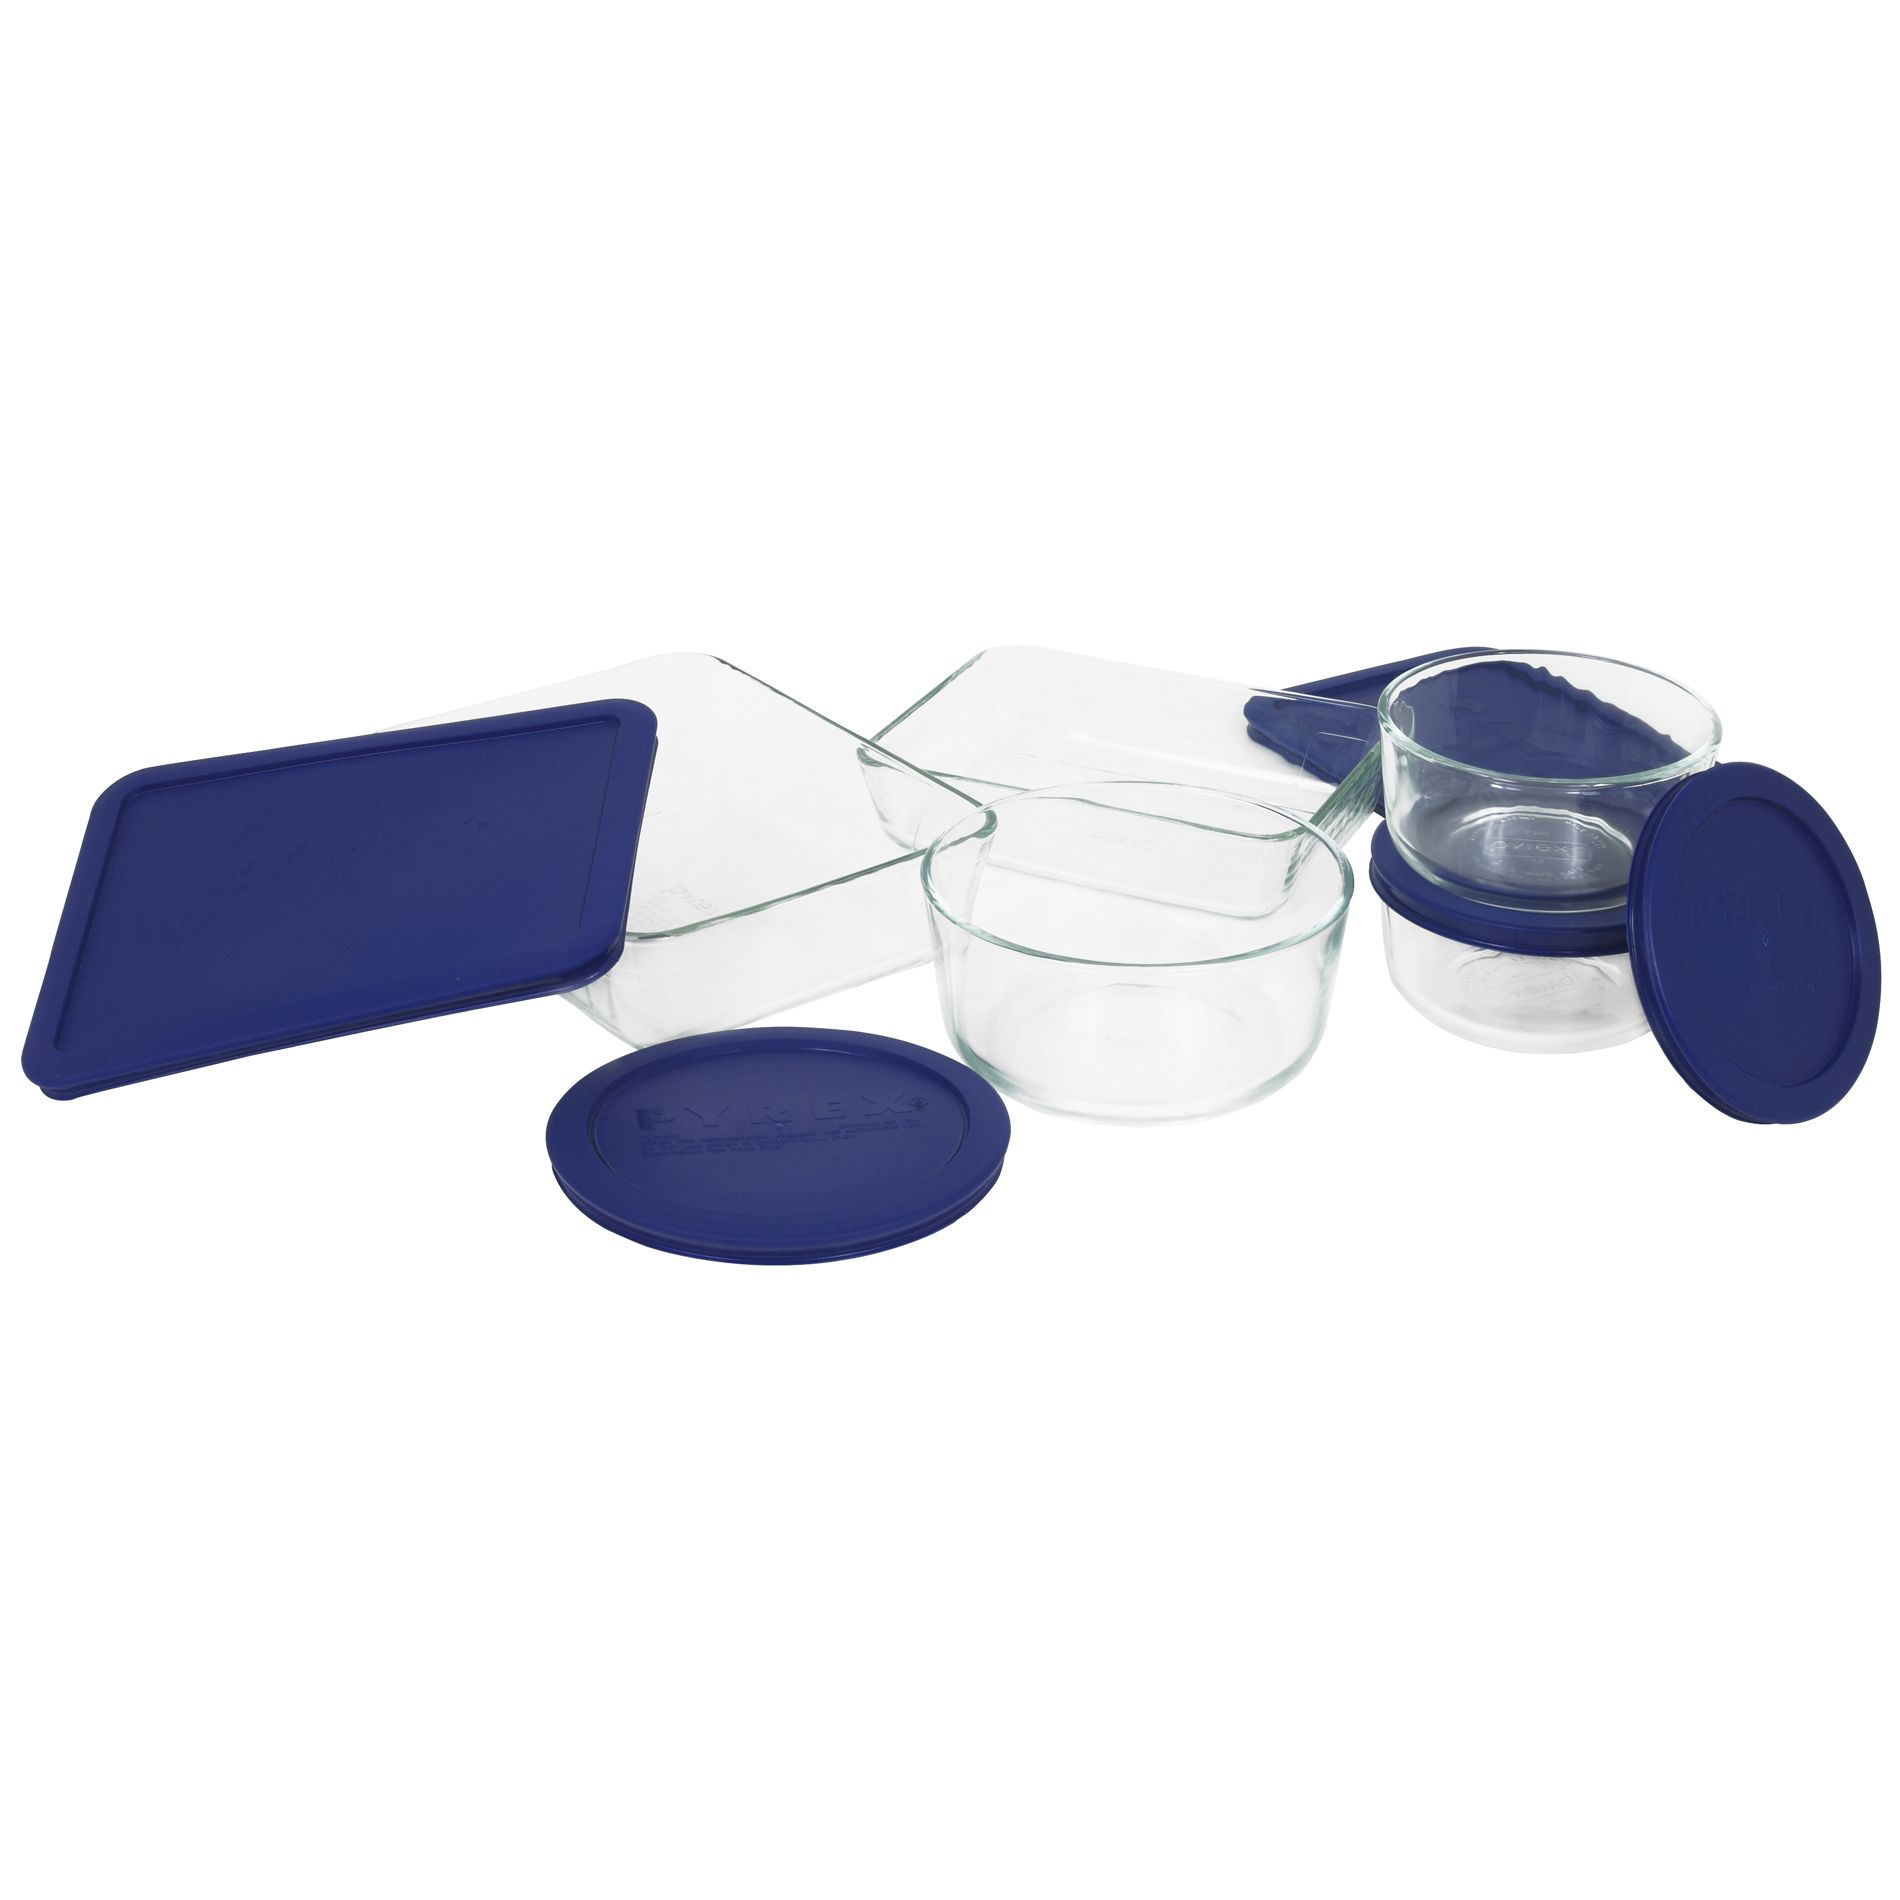 10 Piece Glass Container Storage Set With Covers